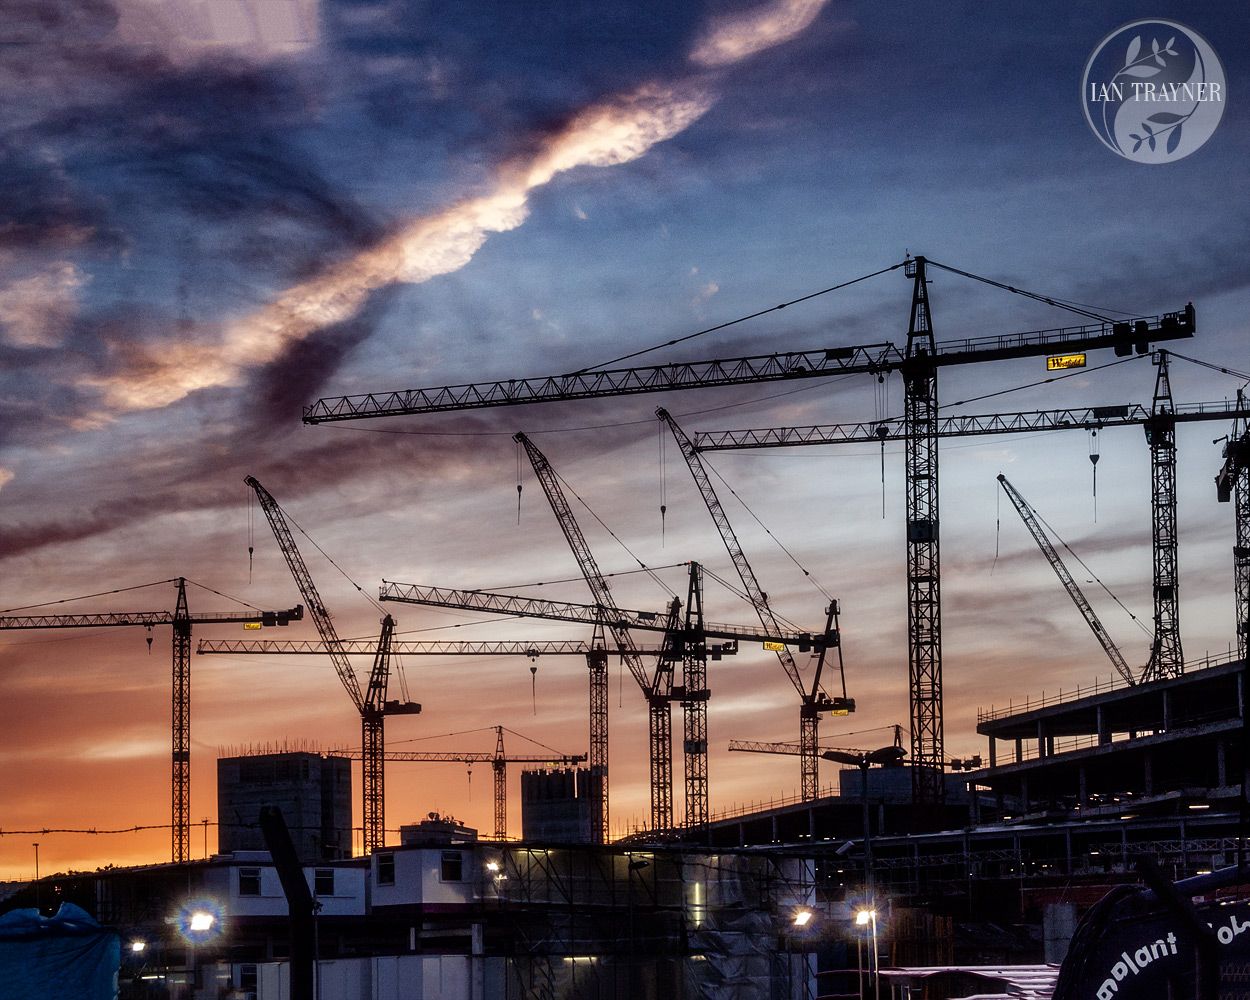 Sky and sunset. Cranes silhouetted against the evening sky. Westfield London in 2007. Photo by Ian Trayner.